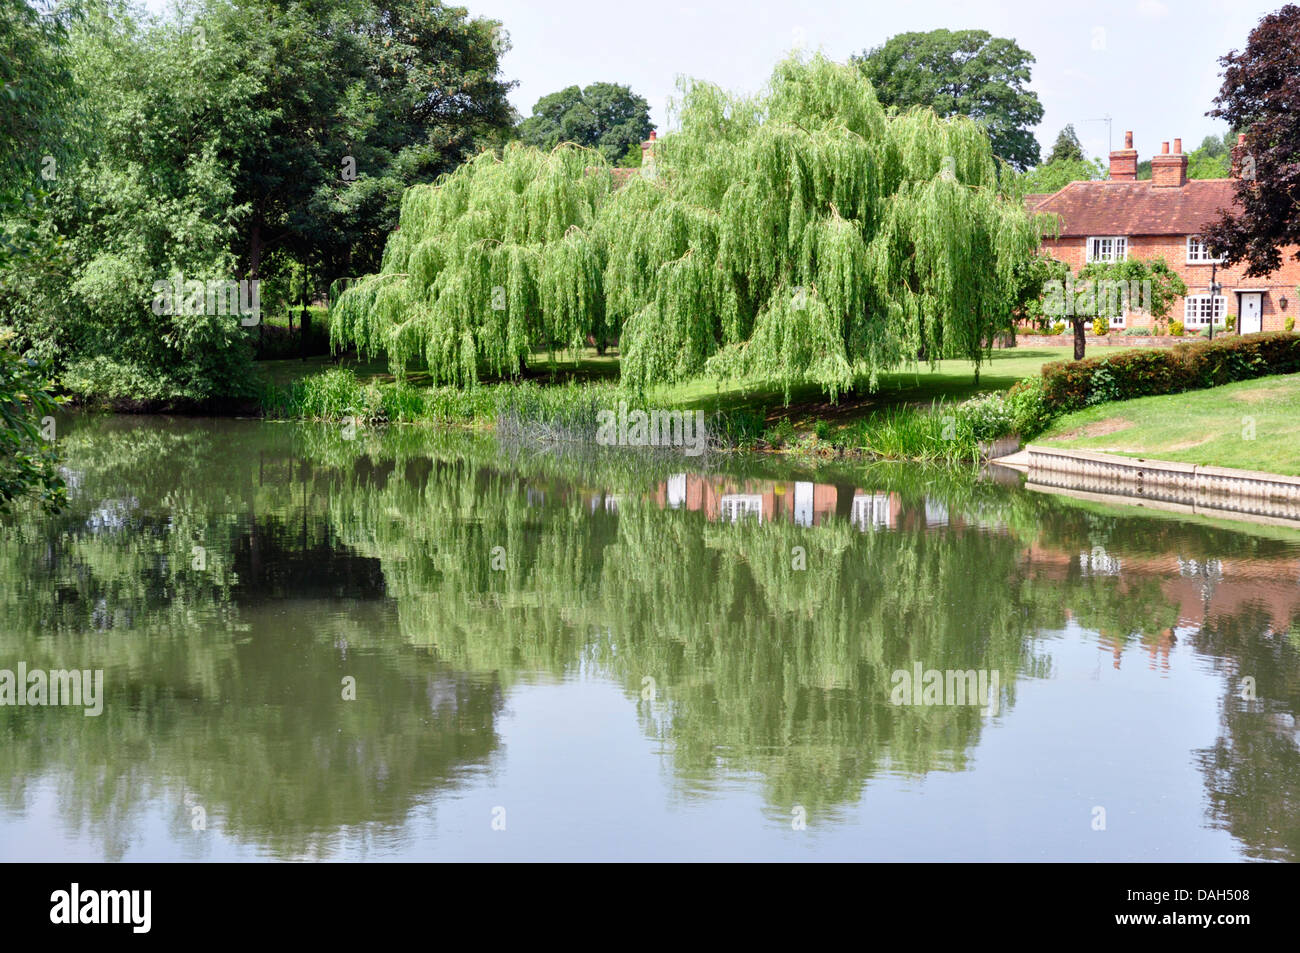 Berks - Sonning on Thames - summer day - trees - weeping willows  reflected in the water - cottages nearby - sunlight - Stock Image